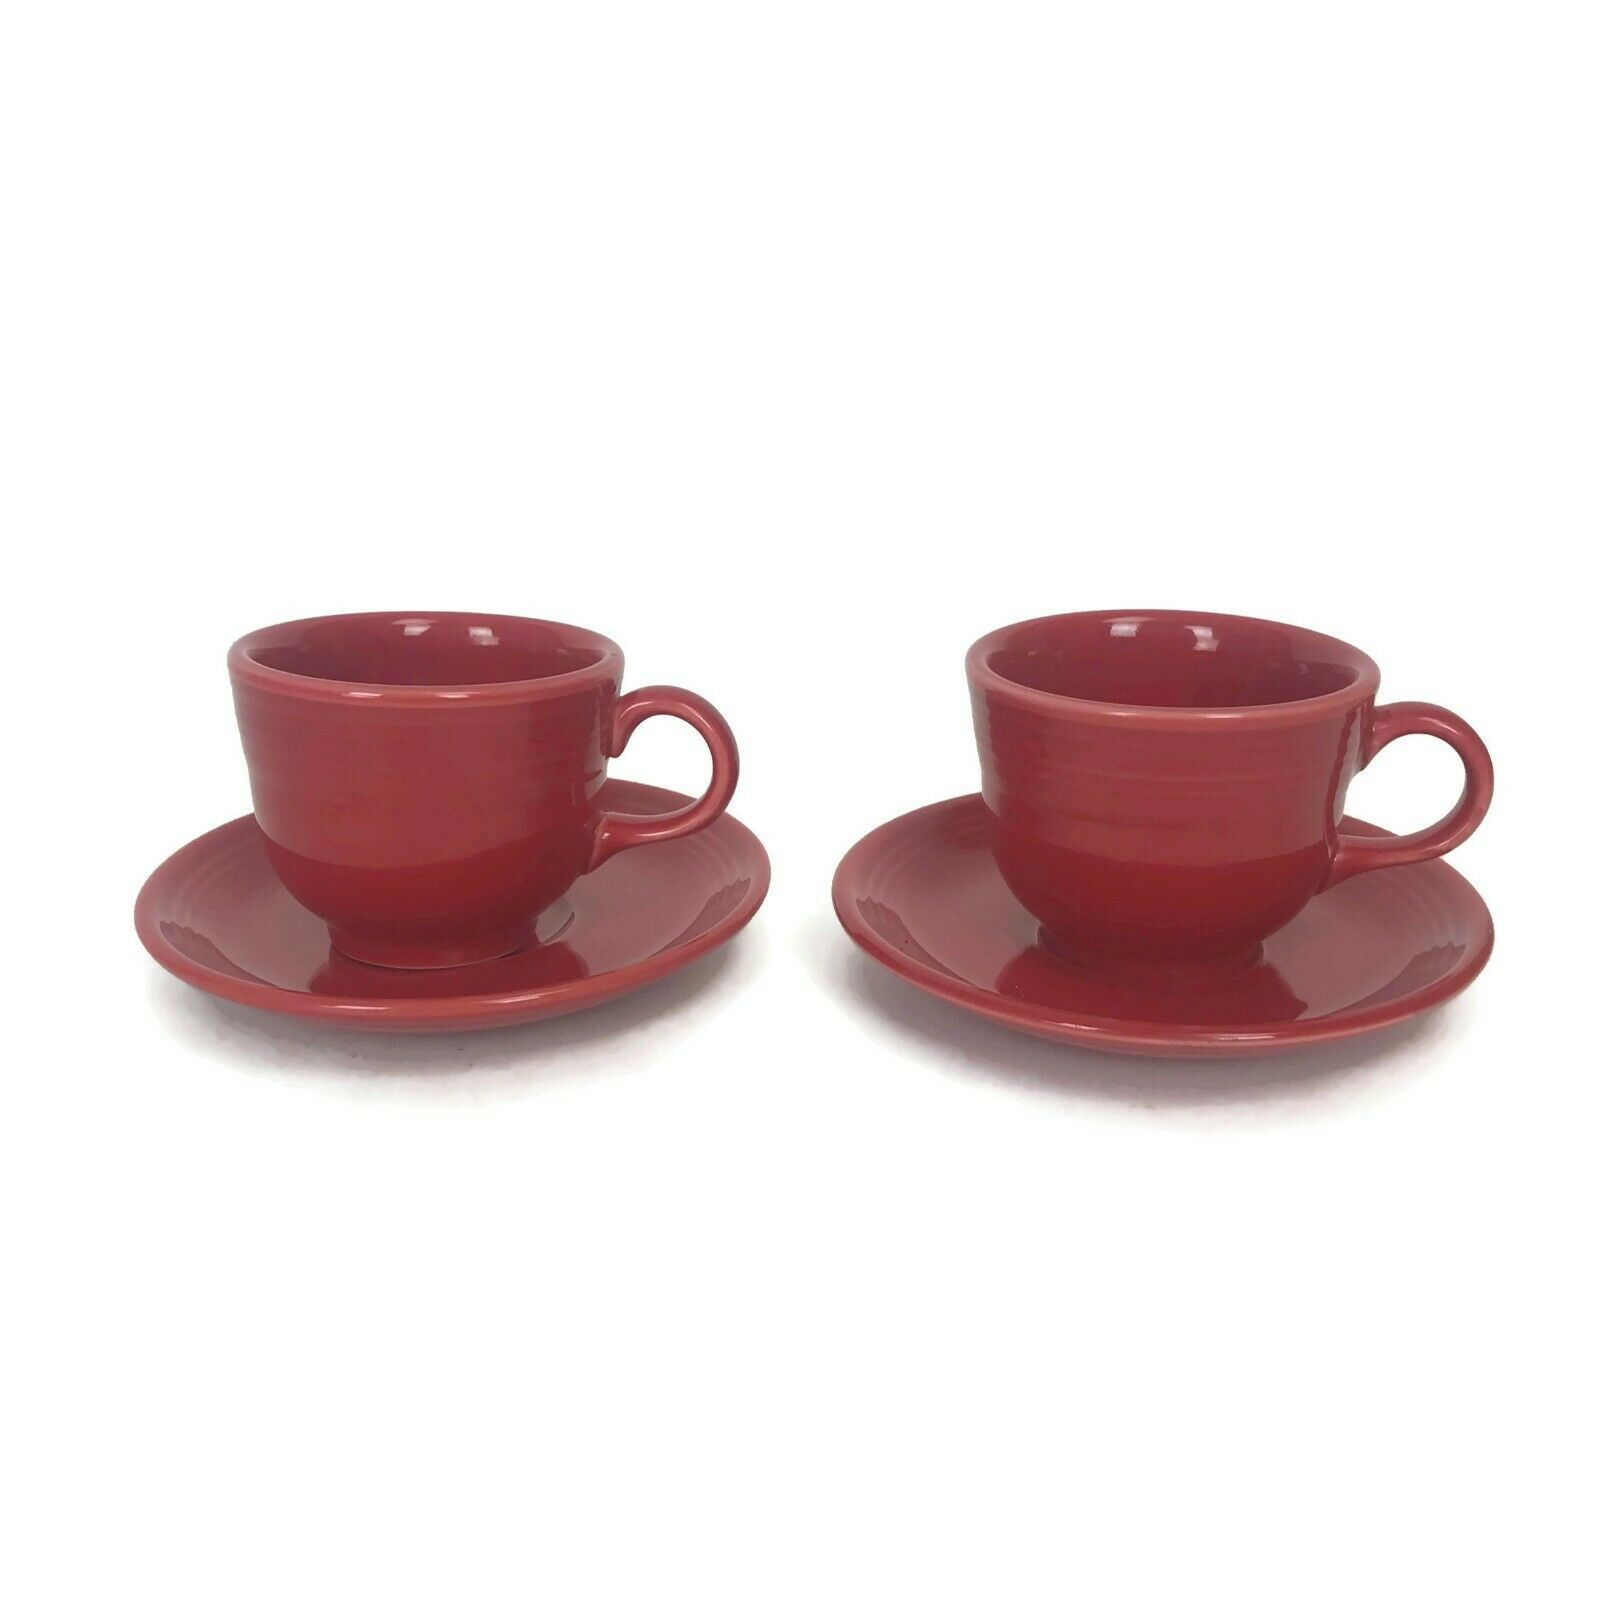 Fiesta Pottery Cups & Saucers Bright Scarlett Red Glaze Coffee Tea Set Of Two - $25.21